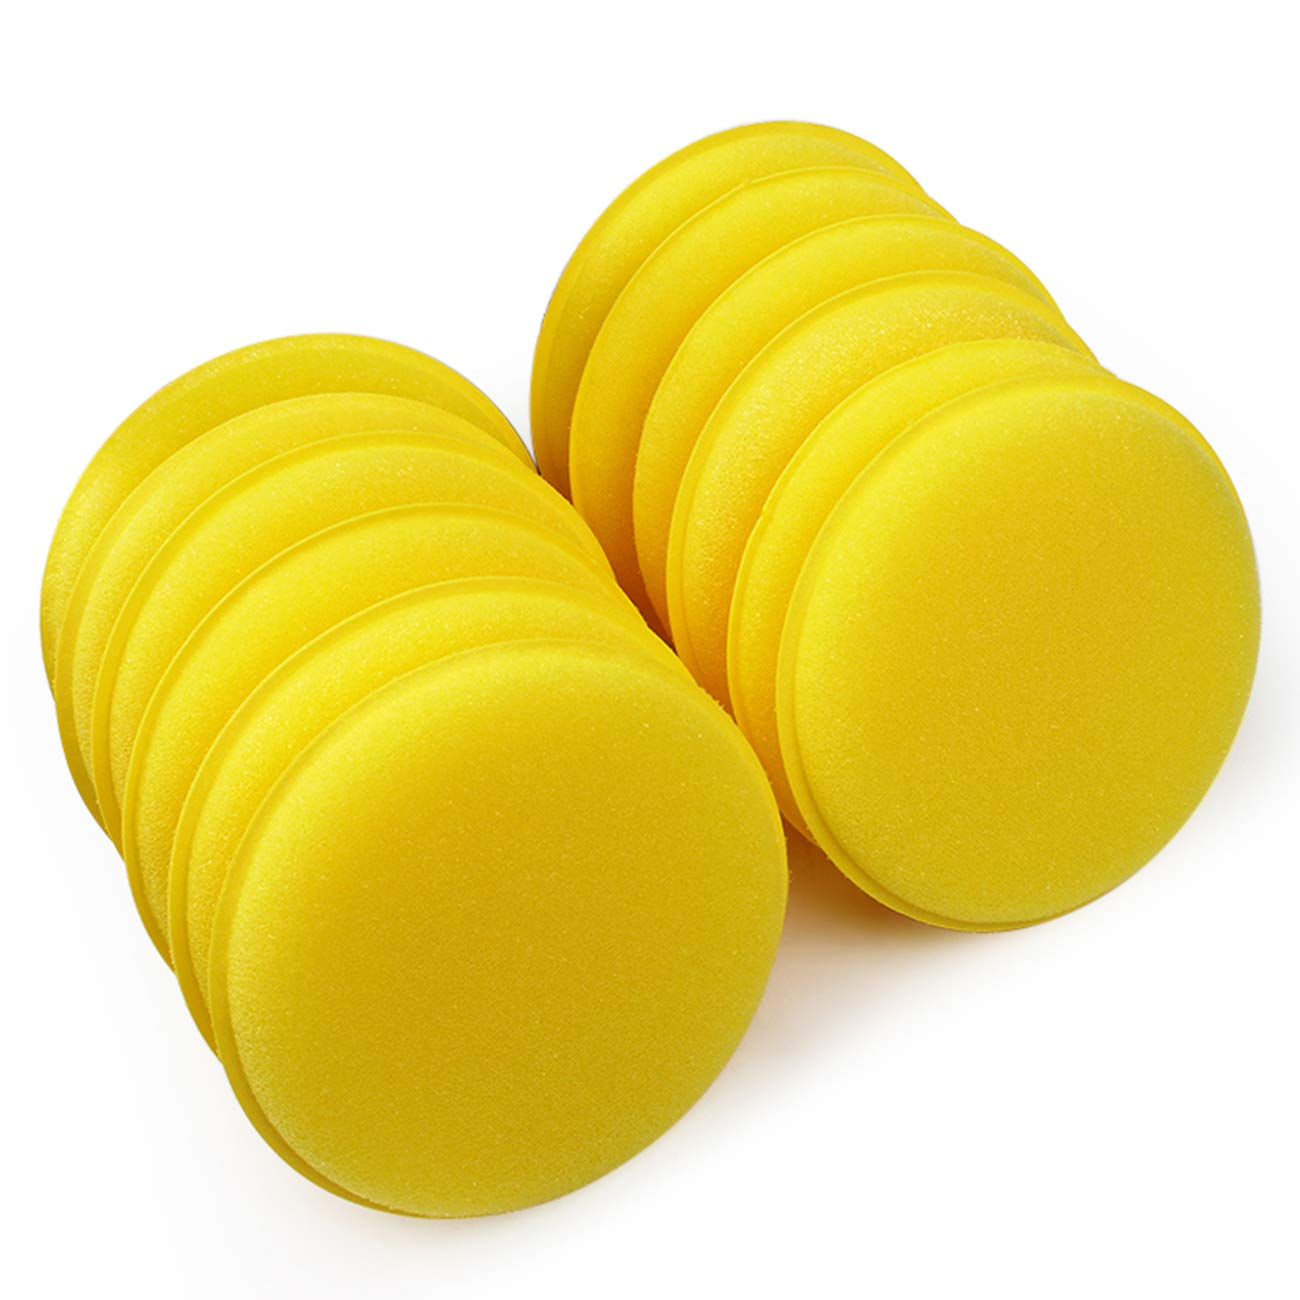 "Sunnyglade 12PCS 4"" Car Wax Applicator/Round Shaped Sponge/Cars Wax Applicator Foam Sponge Ultra-Soft Cleaning Tool (Yellow x12)"